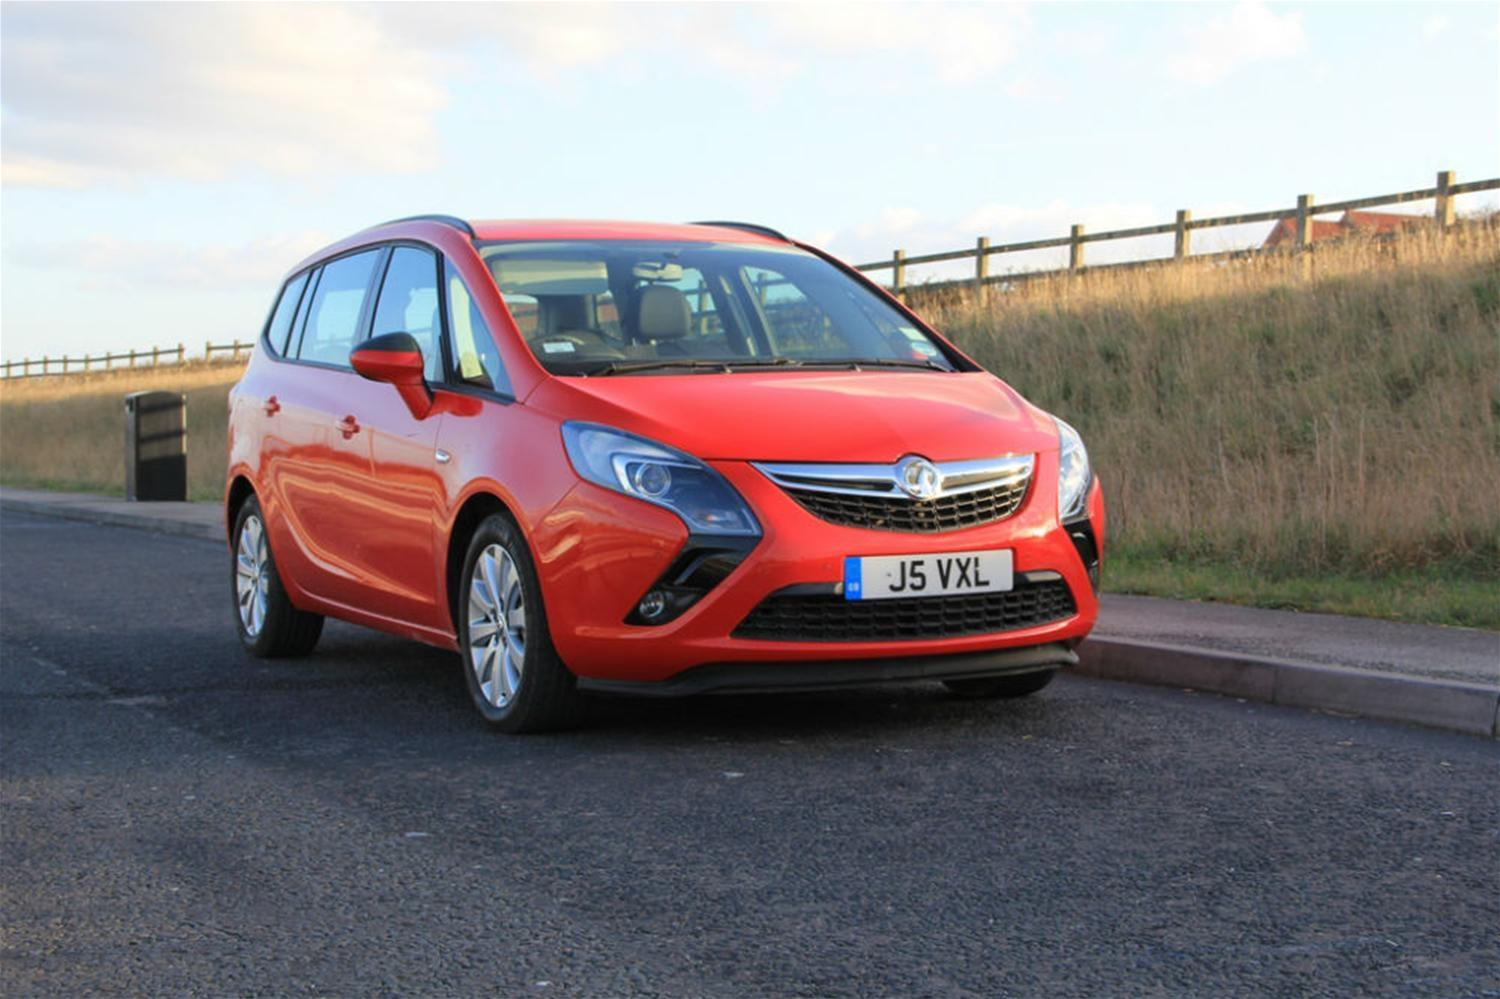 Cleanest Diesel Ever for Vauxhall Zafira Tourer